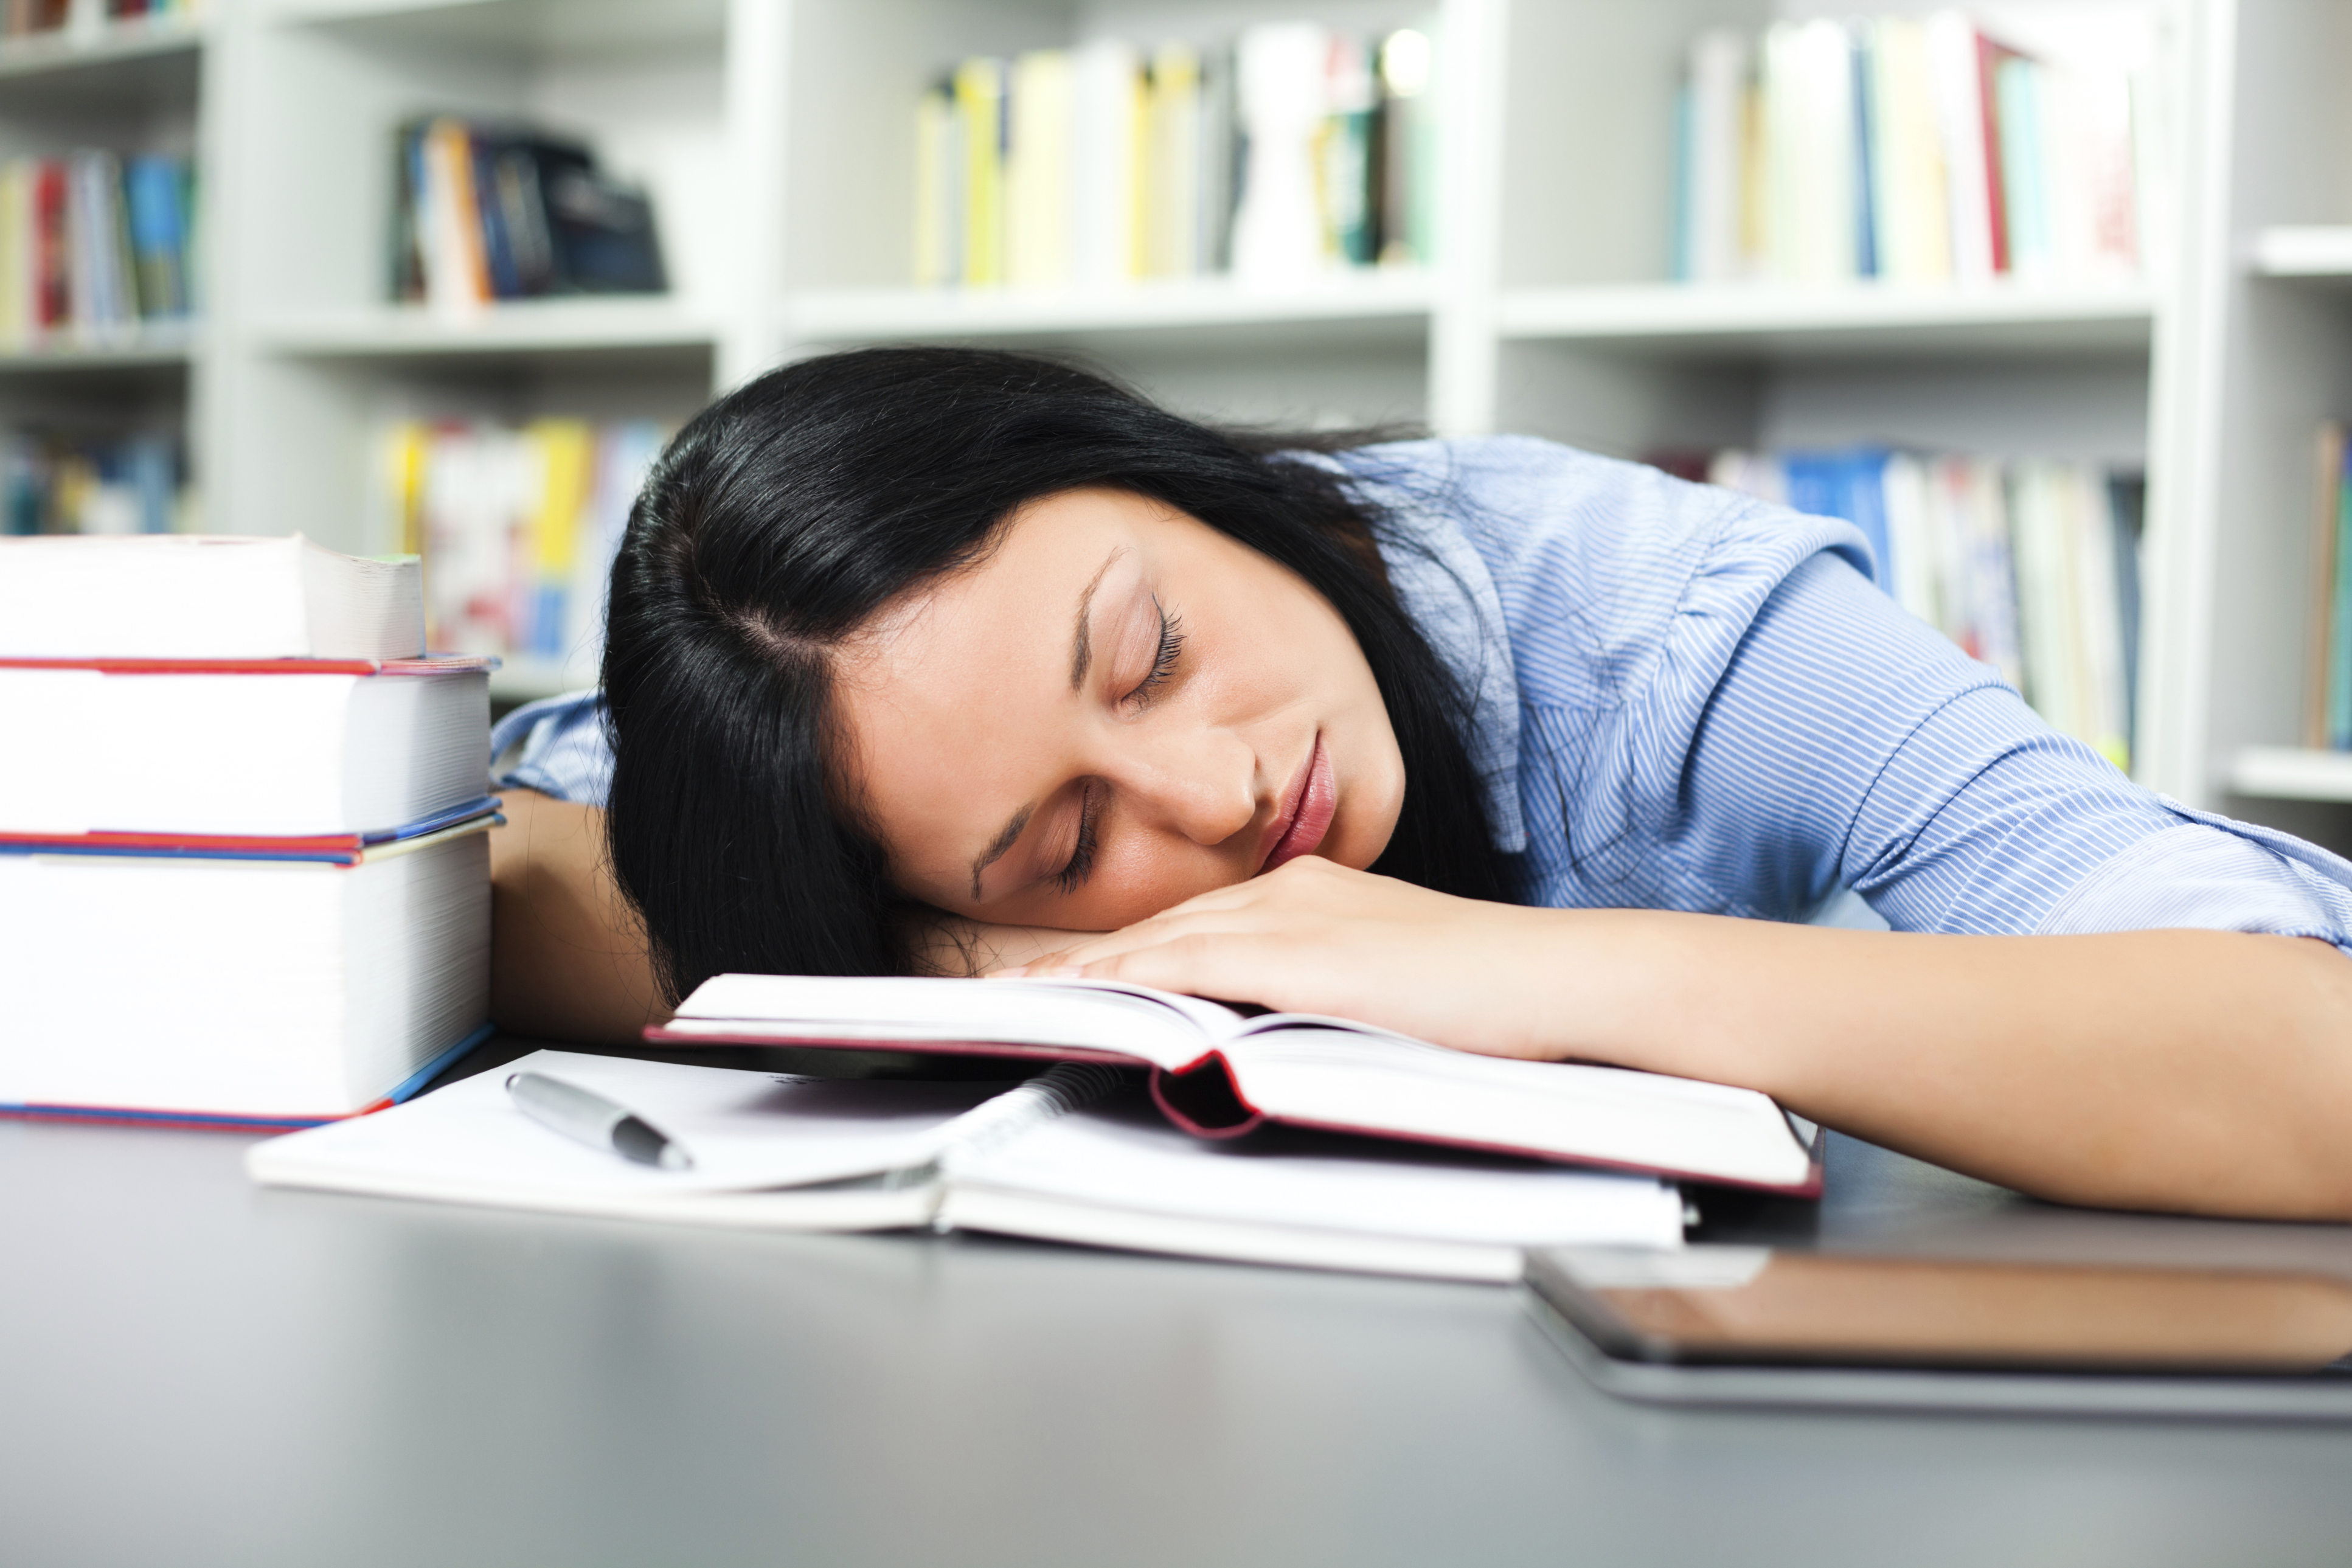 An analysis of the importance of sleep and exercise in college students